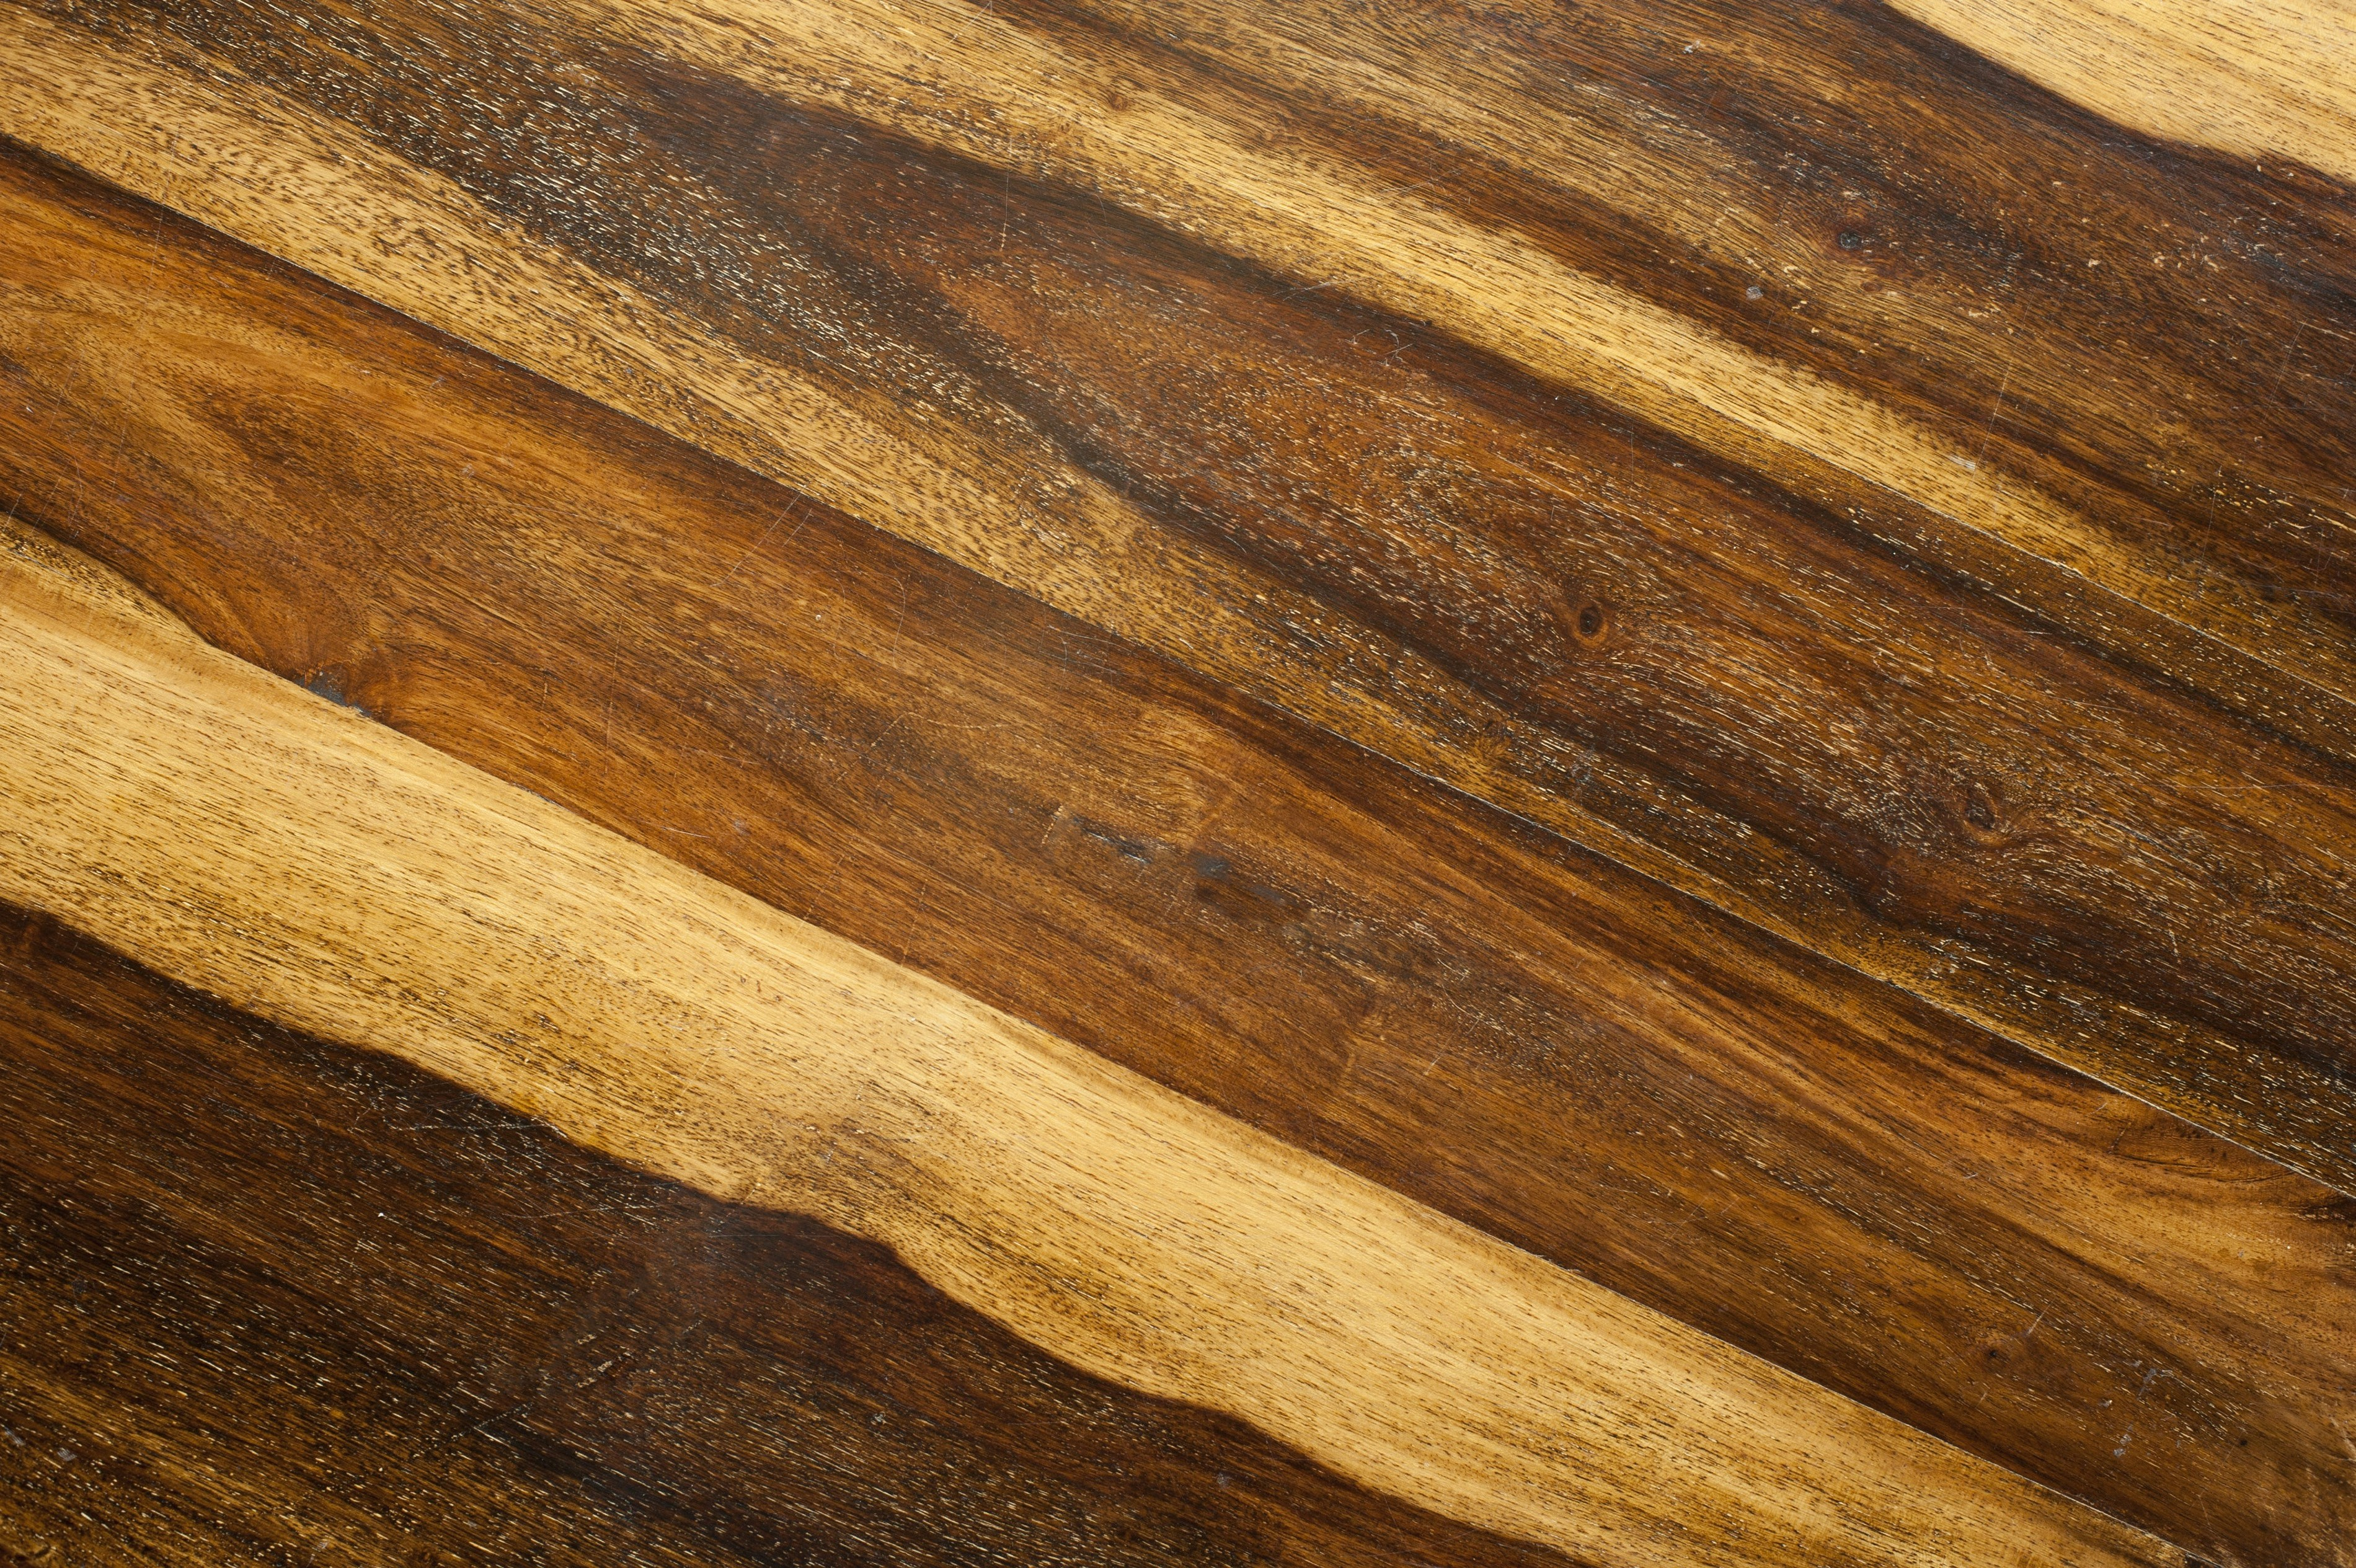 Wood Grain Texture With Light And Dark Brown Lines